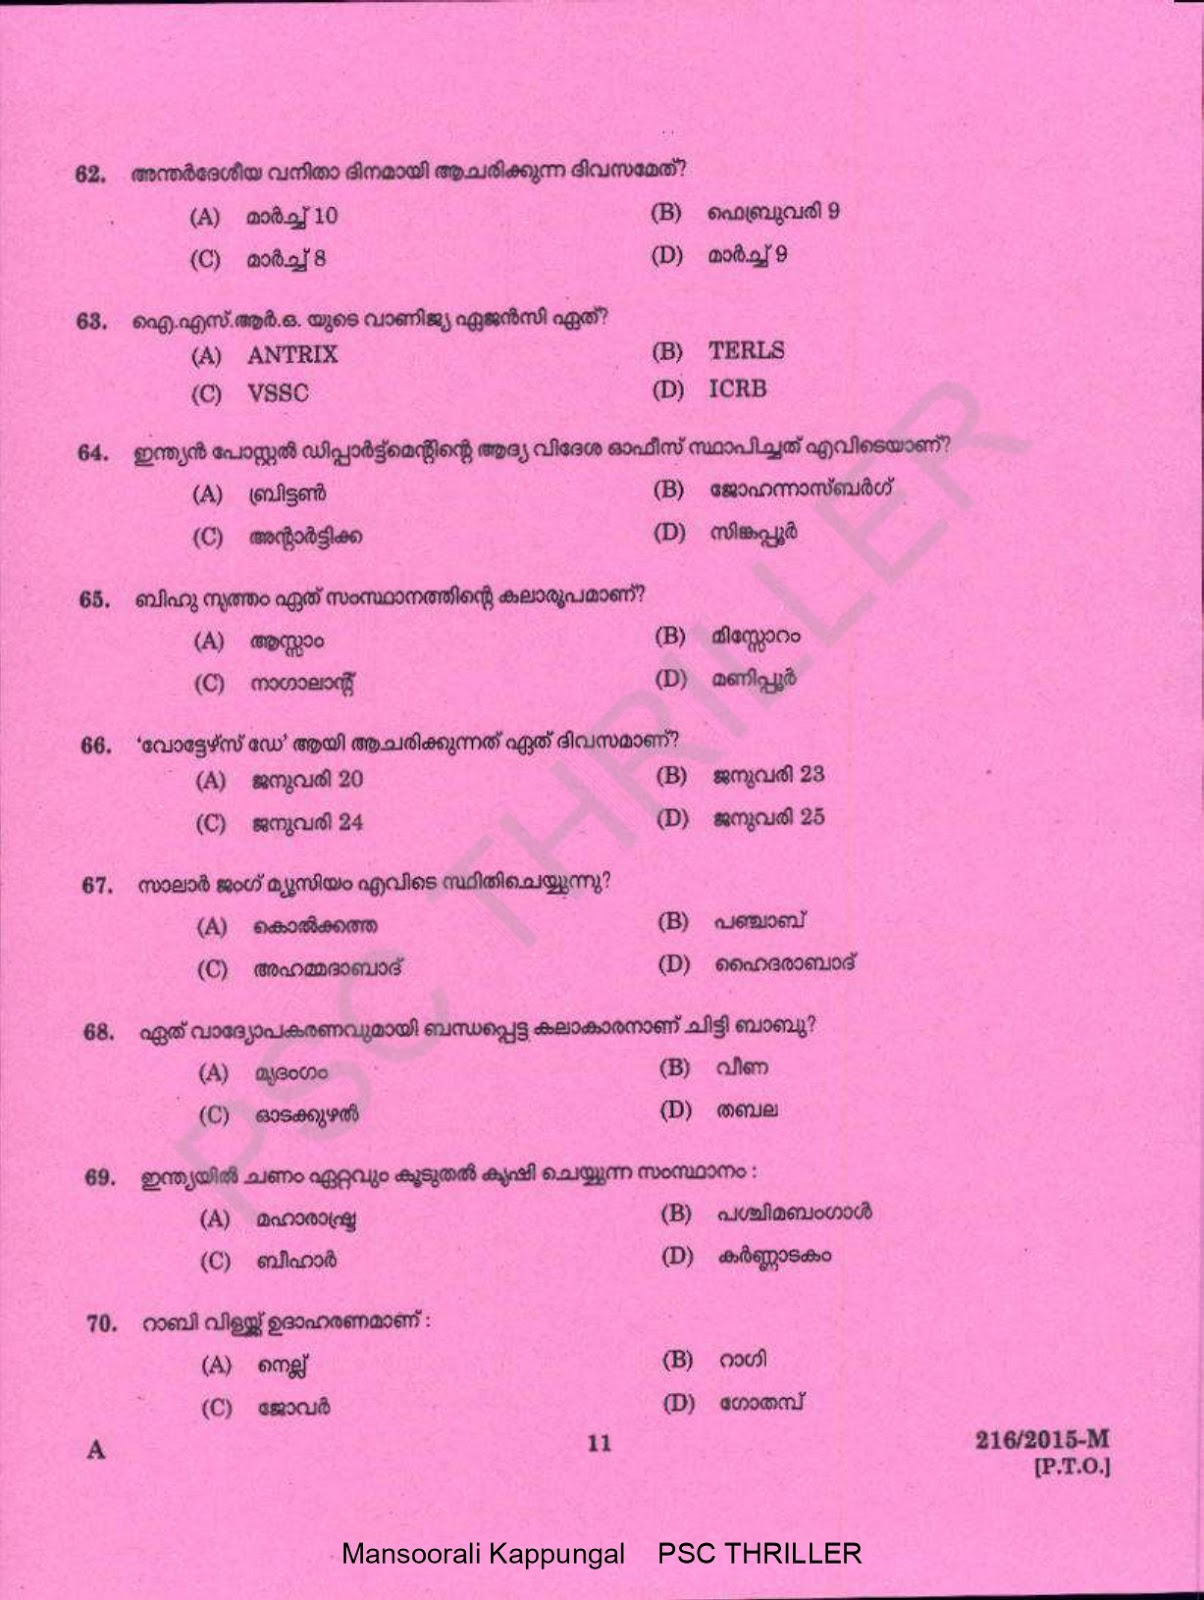 Village Extension Officer (VEO) -Question Paper -216/2015 - Kerala PSC